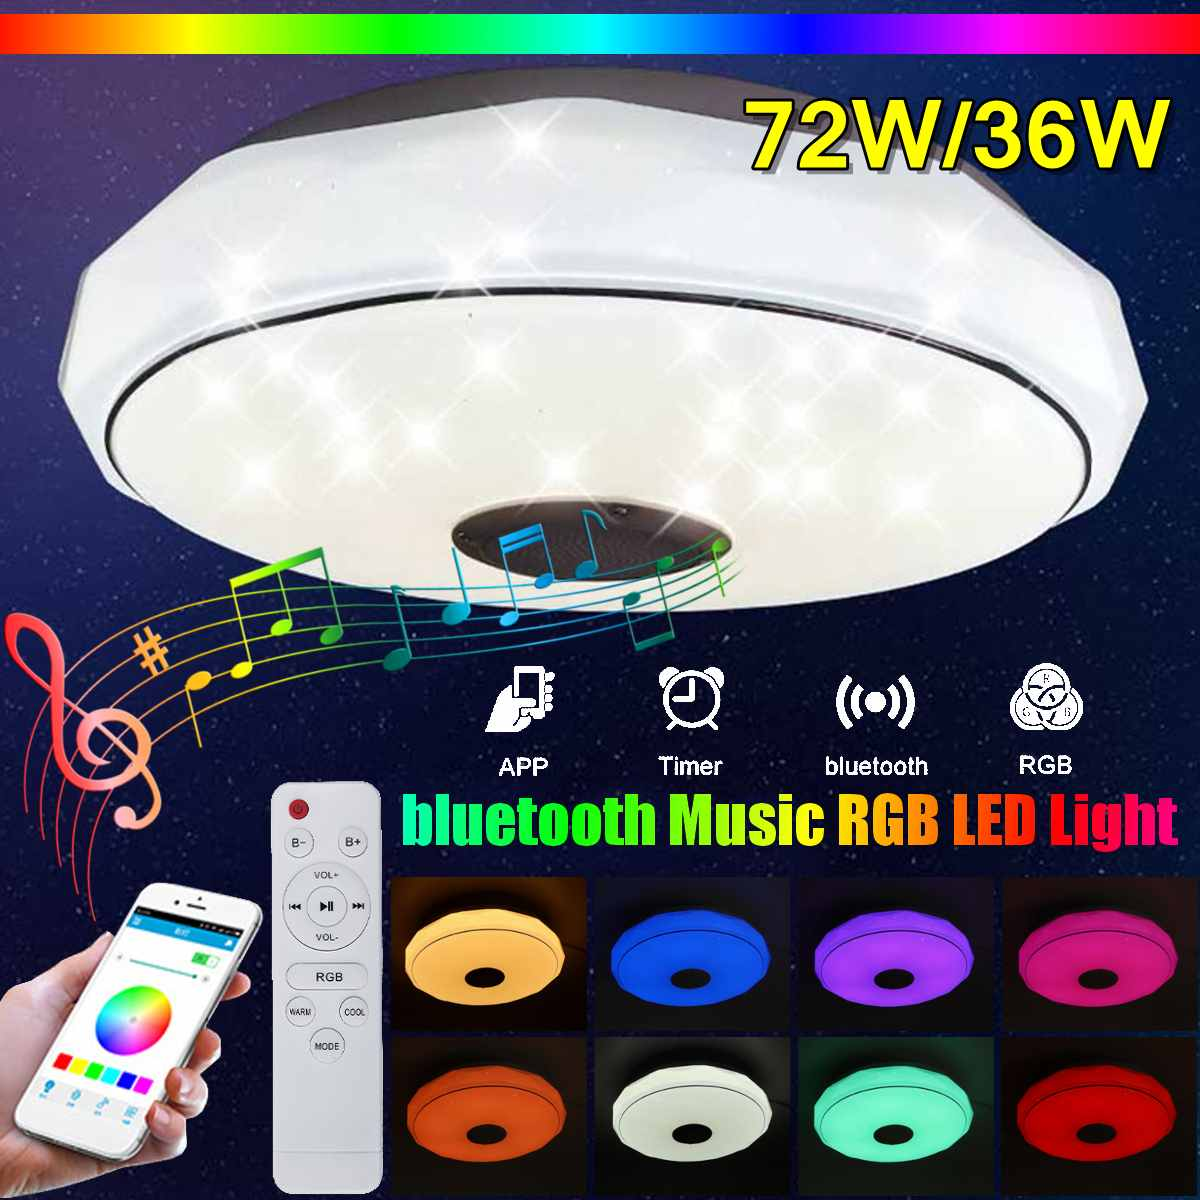 40 Bluetooth RGB Led plafonjera 2x36W M205502-BT/WRGB